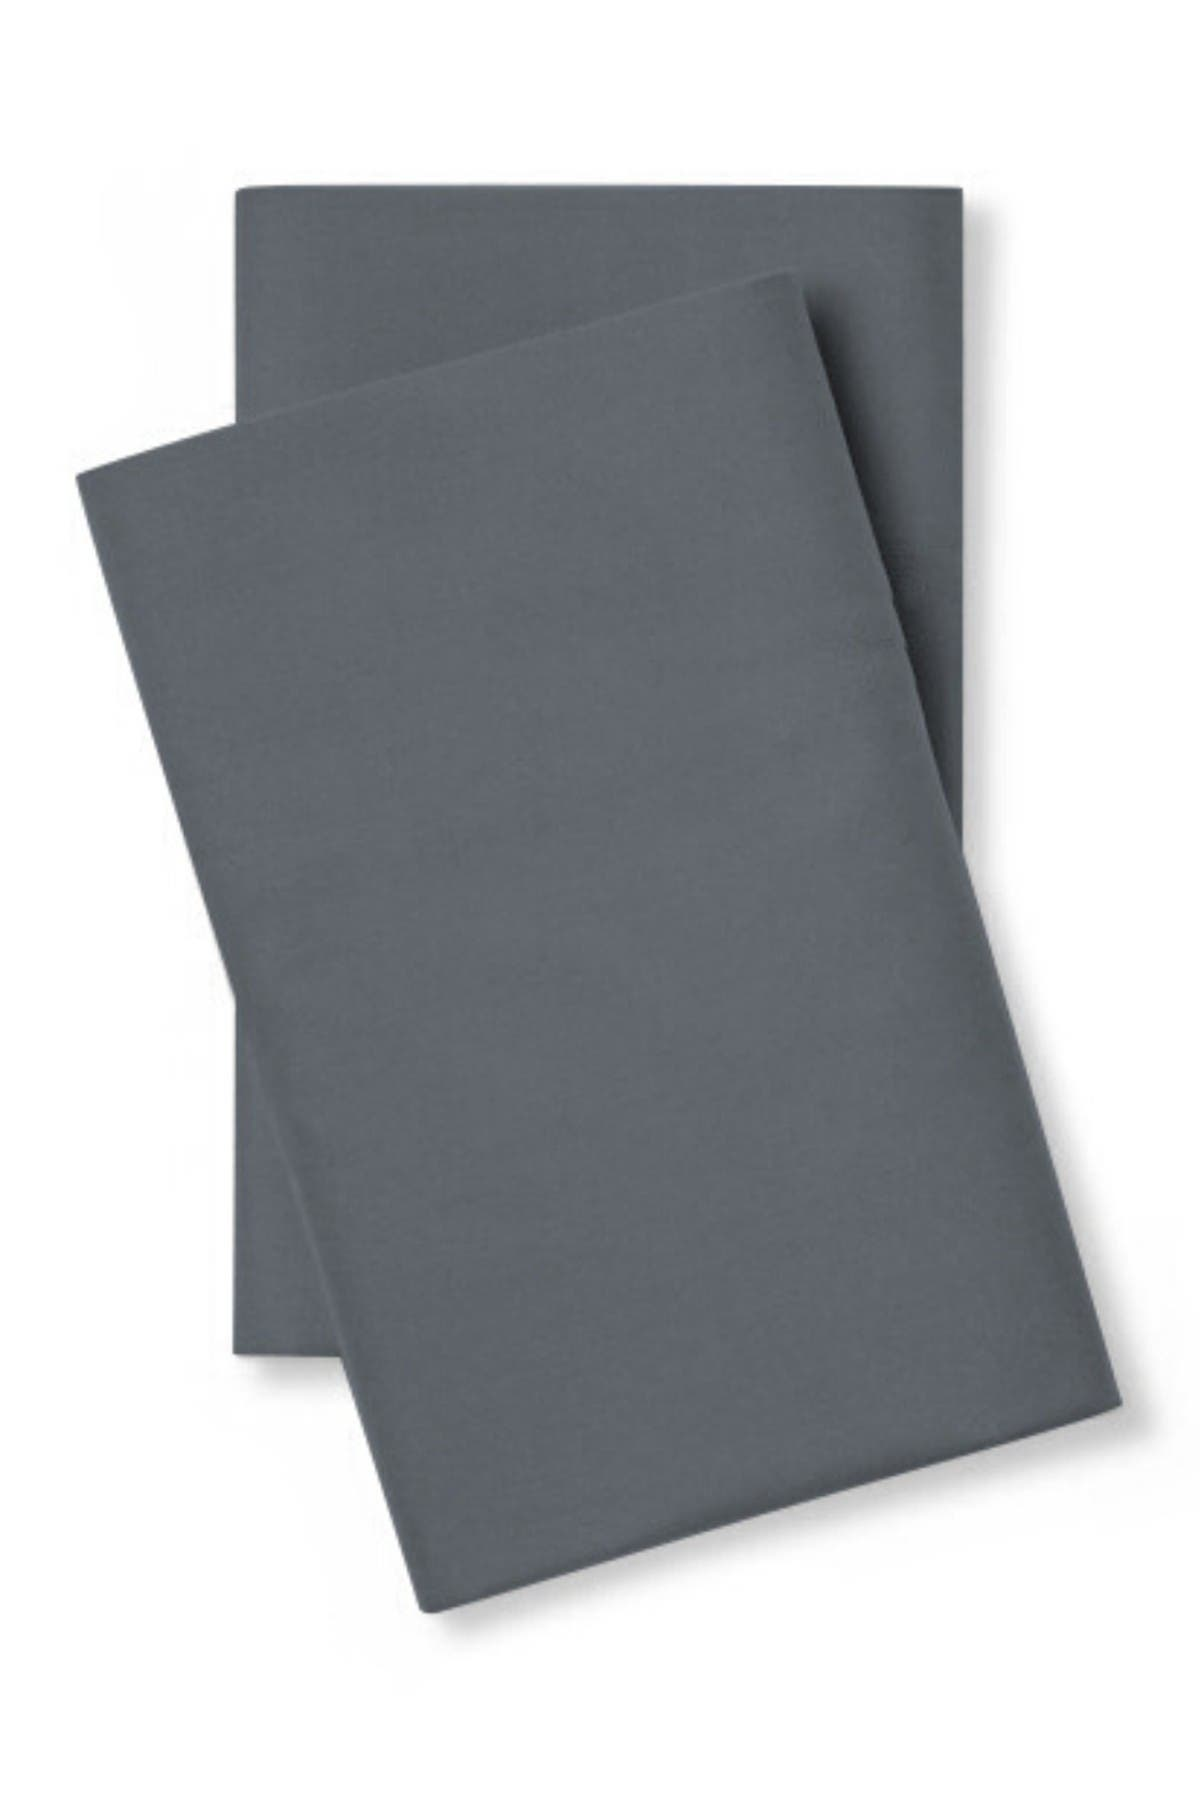 Image of Pillow Guy Classic Cool & Crisp Cotton Percale Pillowcase Pair - Set of 2 - Standard/Queen - Charcoal